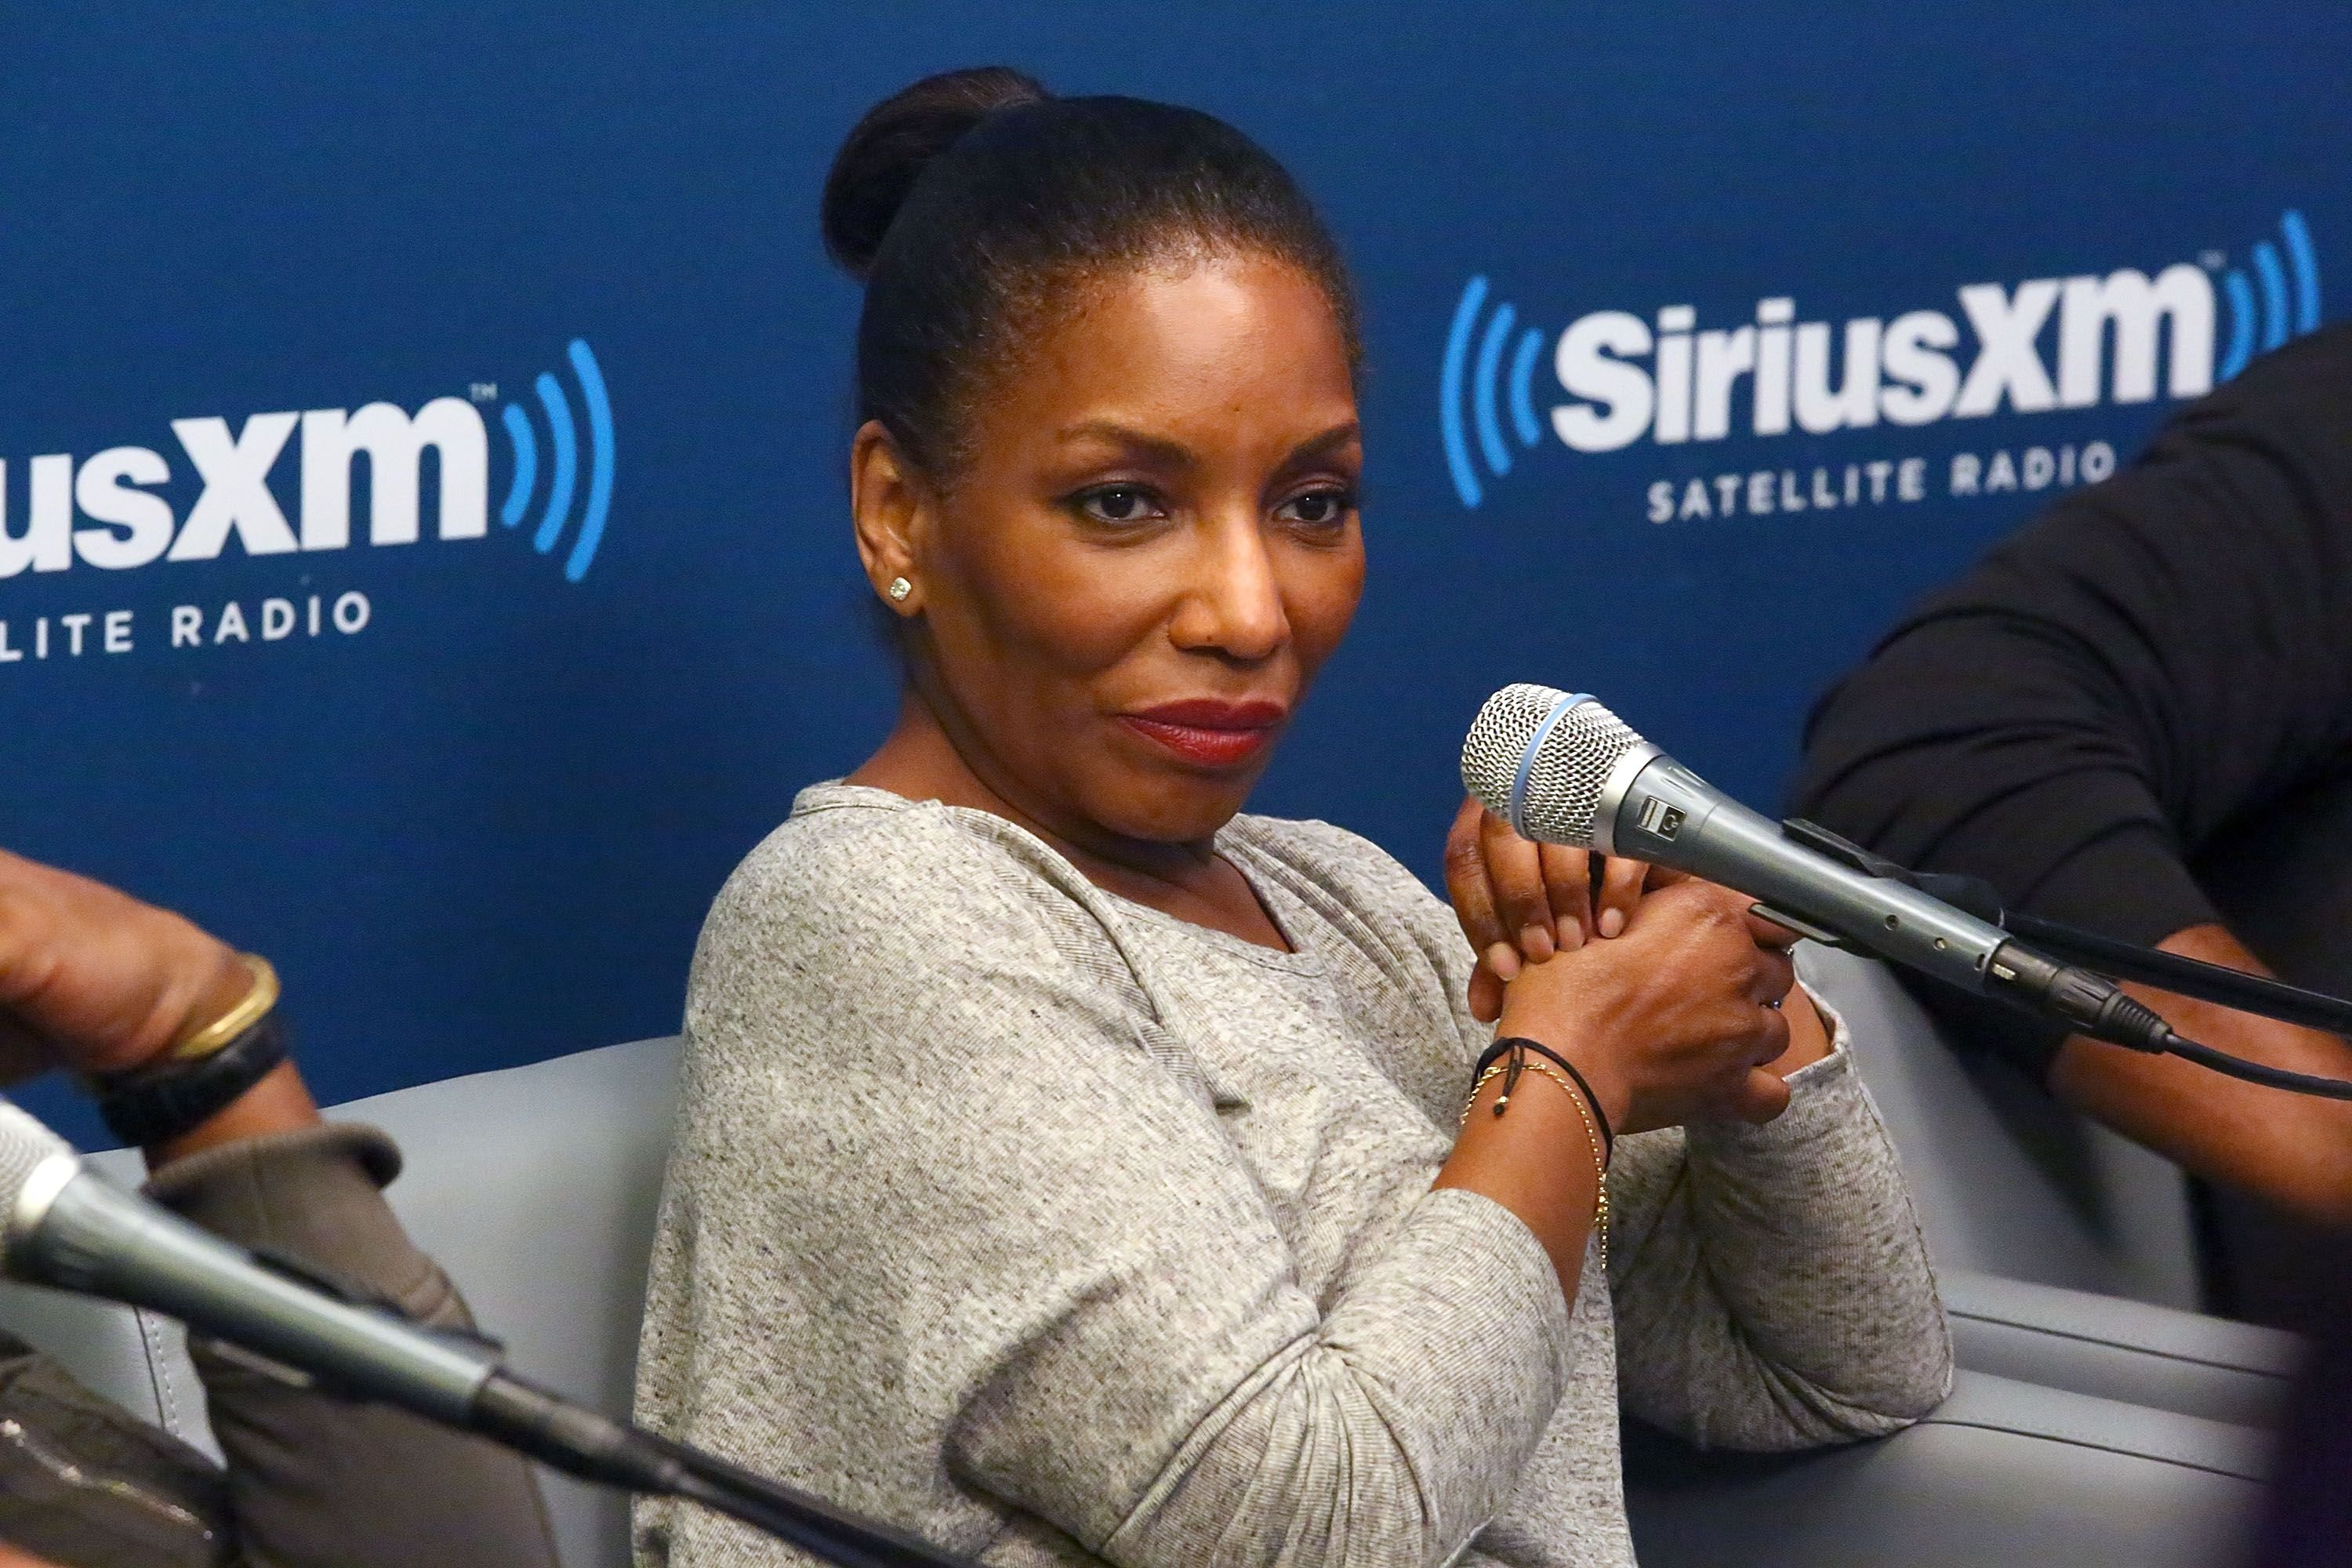 Stephanie Mills attends SiriusXM's Town Hall with the cast of 'The Wiz' hosted by Radio Andy host Bevy Smith at the SiriusXM Studios on October 26, 2015. | Source: Getty Images